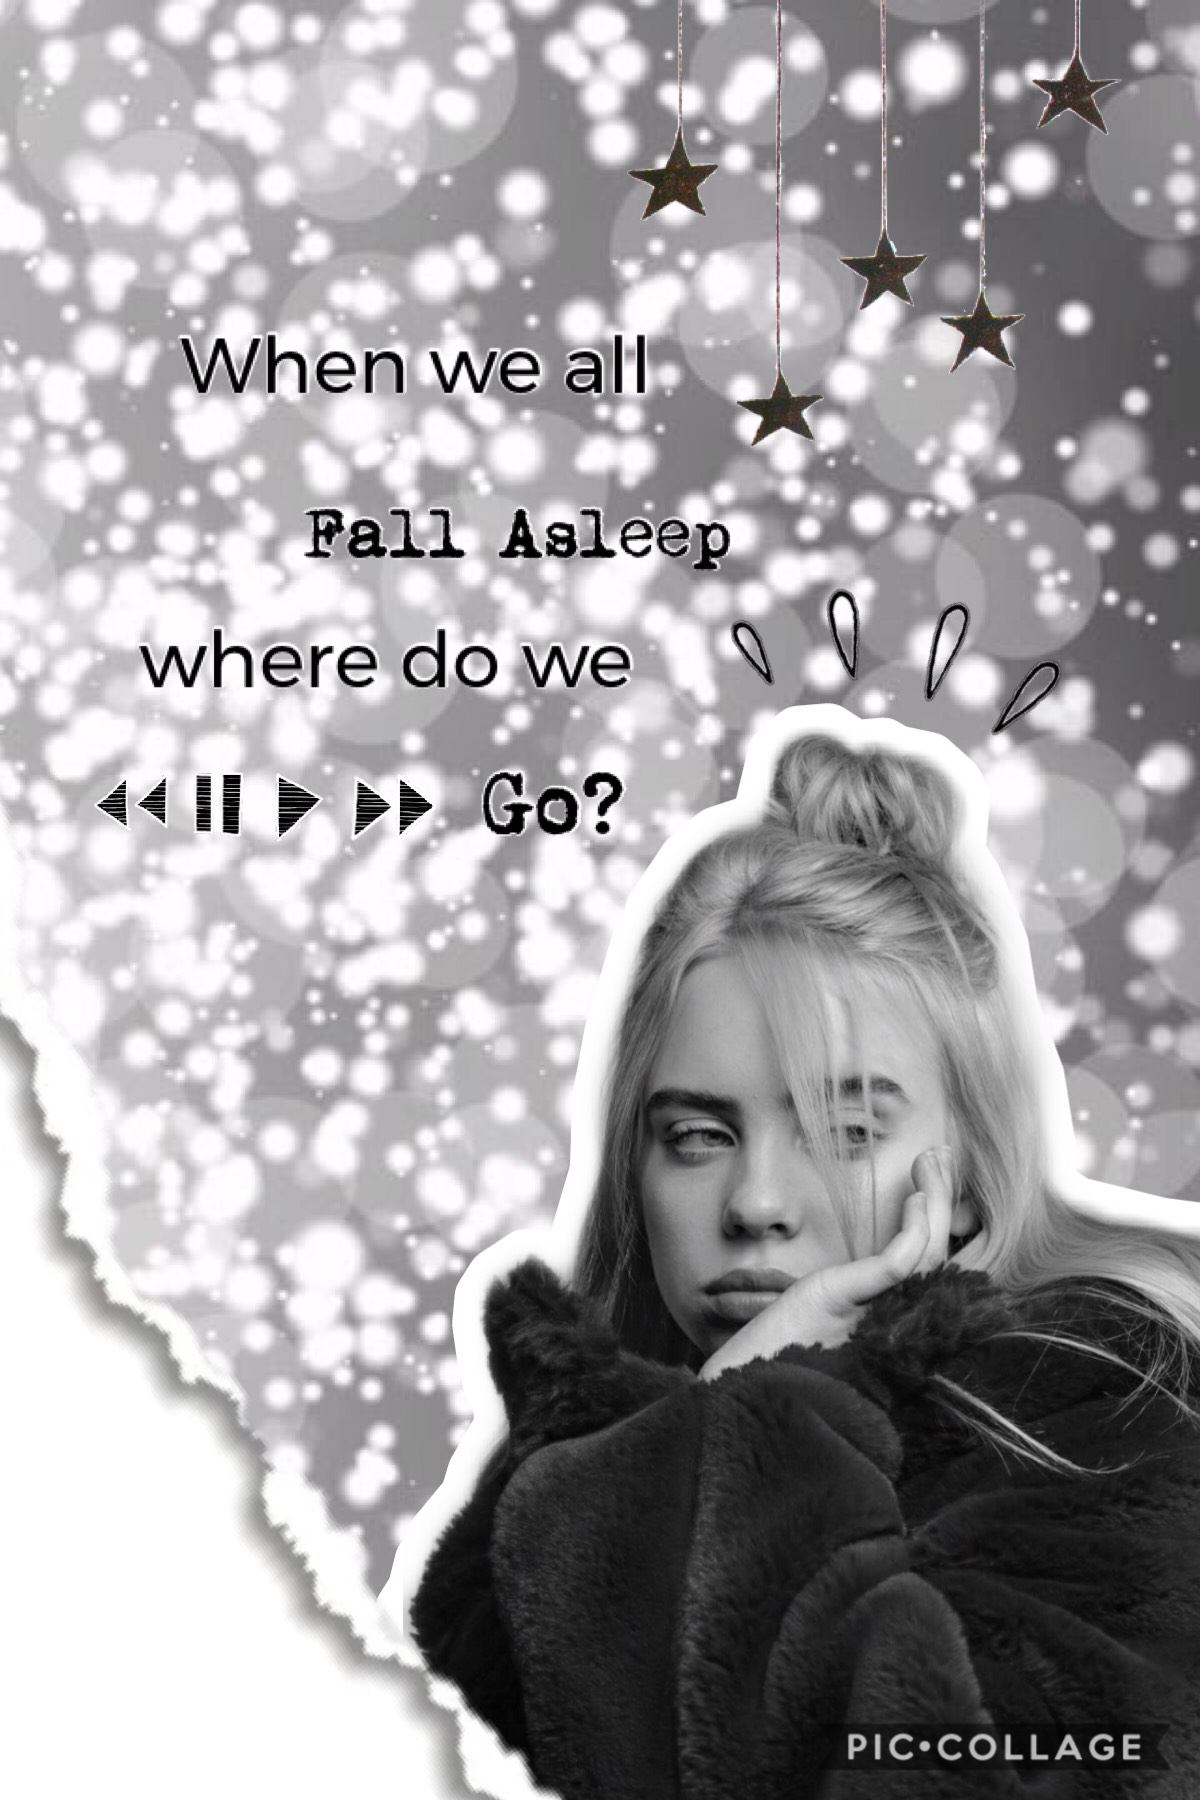 🖤tap🖤 Yes, it's another Billie collage. How was your 4th of July?